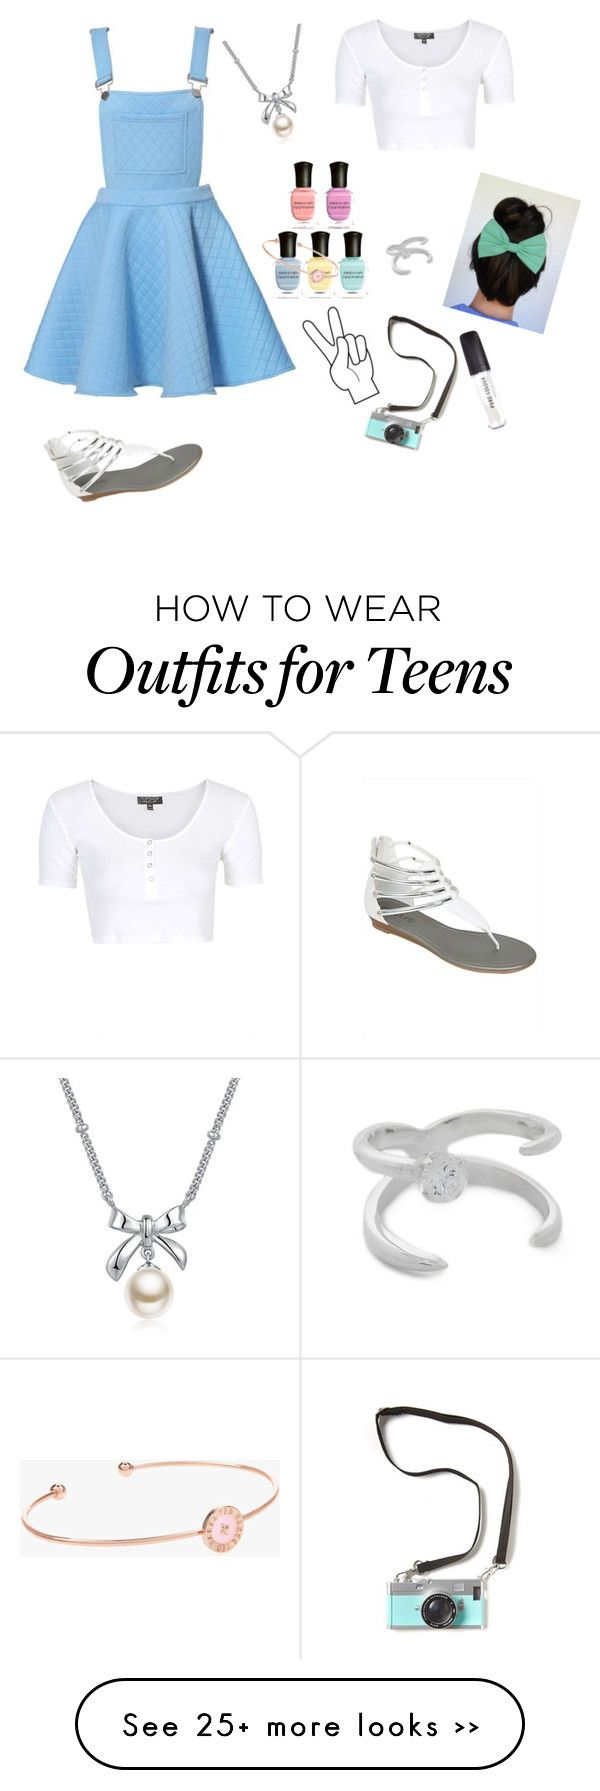 """""""When Your Mom Let you dress like your a 5 year old again"""" by dbwoody11 on Polyvore"""